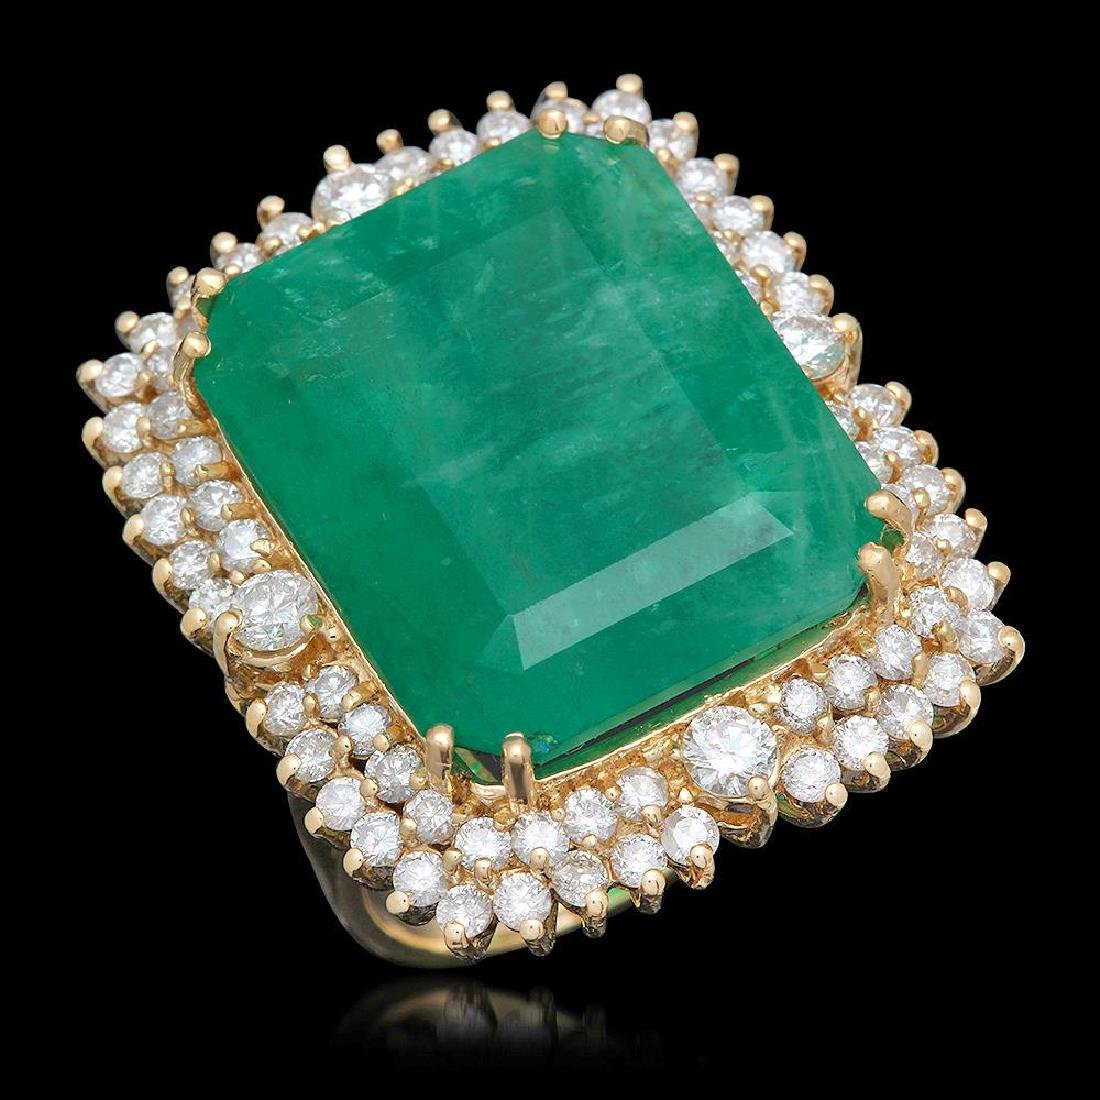 14K Gold 29.27 Emerald 2.52 Diamond Ring